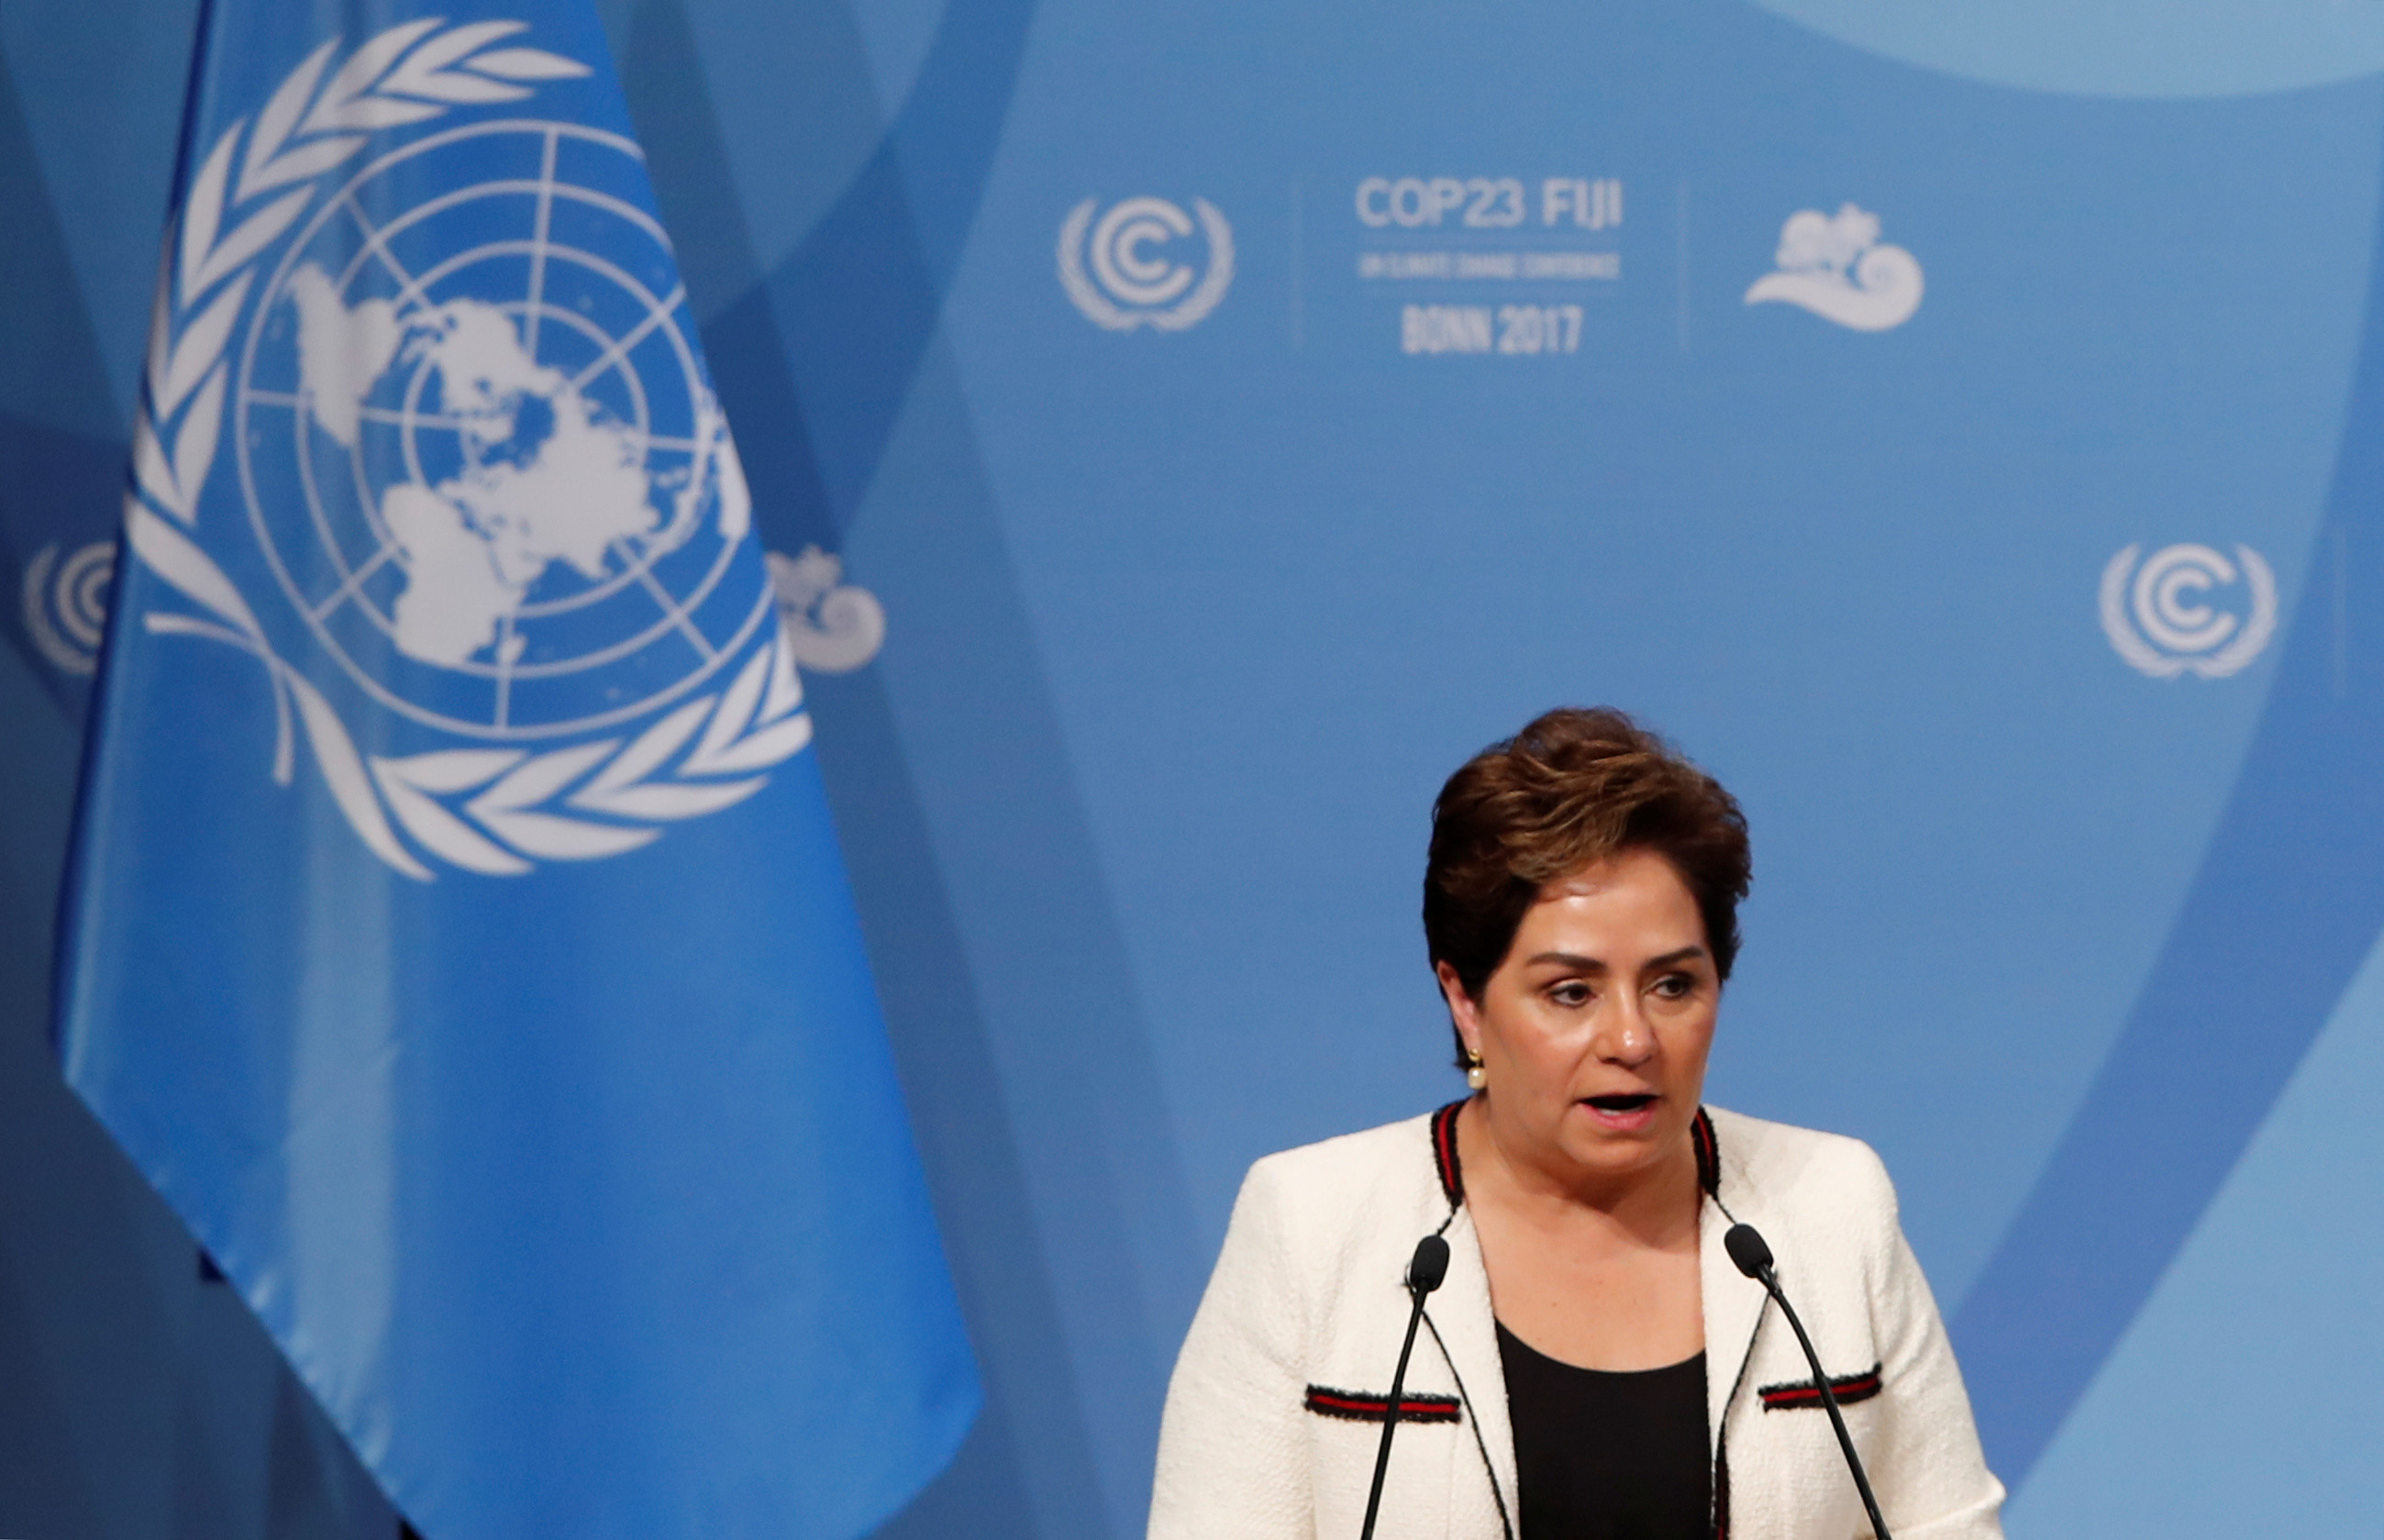 Patricia Espinosa, Executive Secretary of the United Nations Framework Convention on Climate Change talking at a conference on climate change